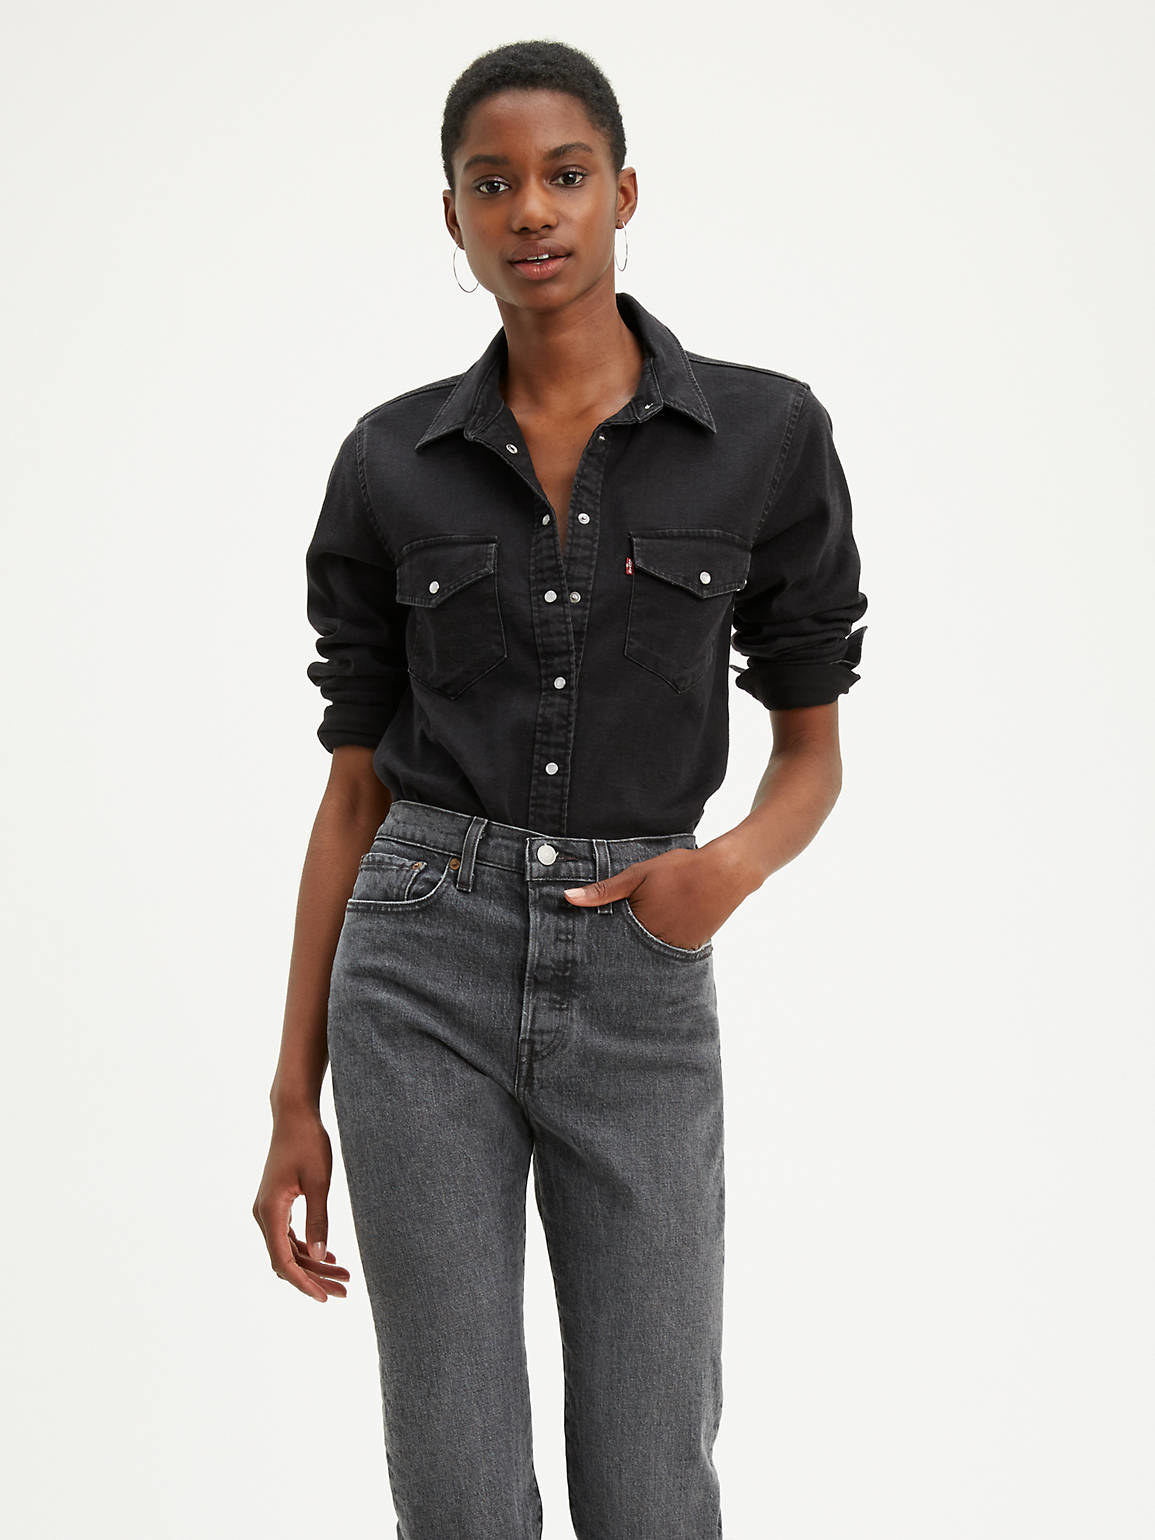 a model wearing the shirt in black with a pair of dark-colored jeans